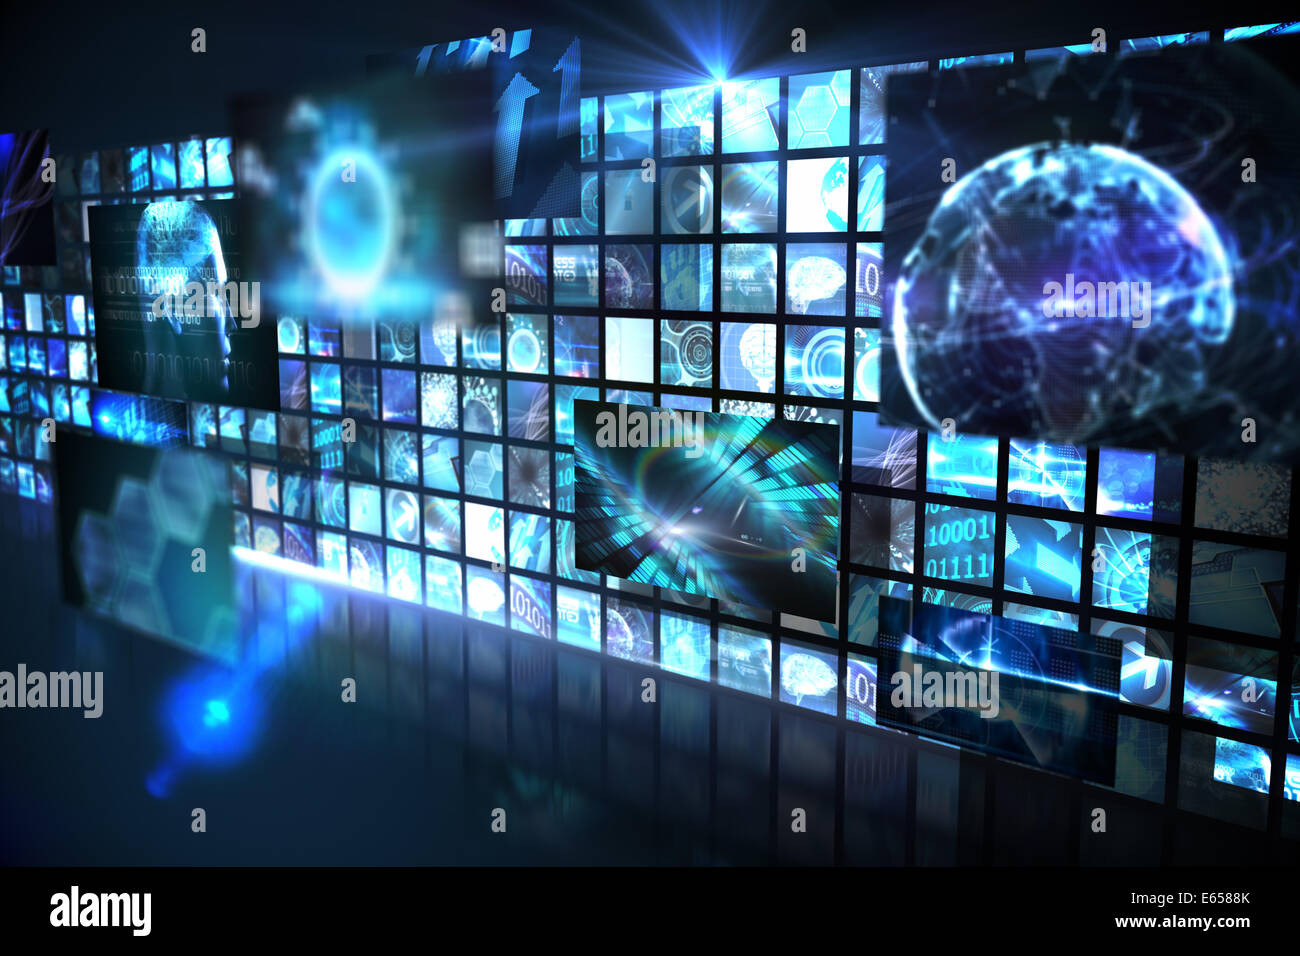 Wall of digital screens in blue - Stock Image